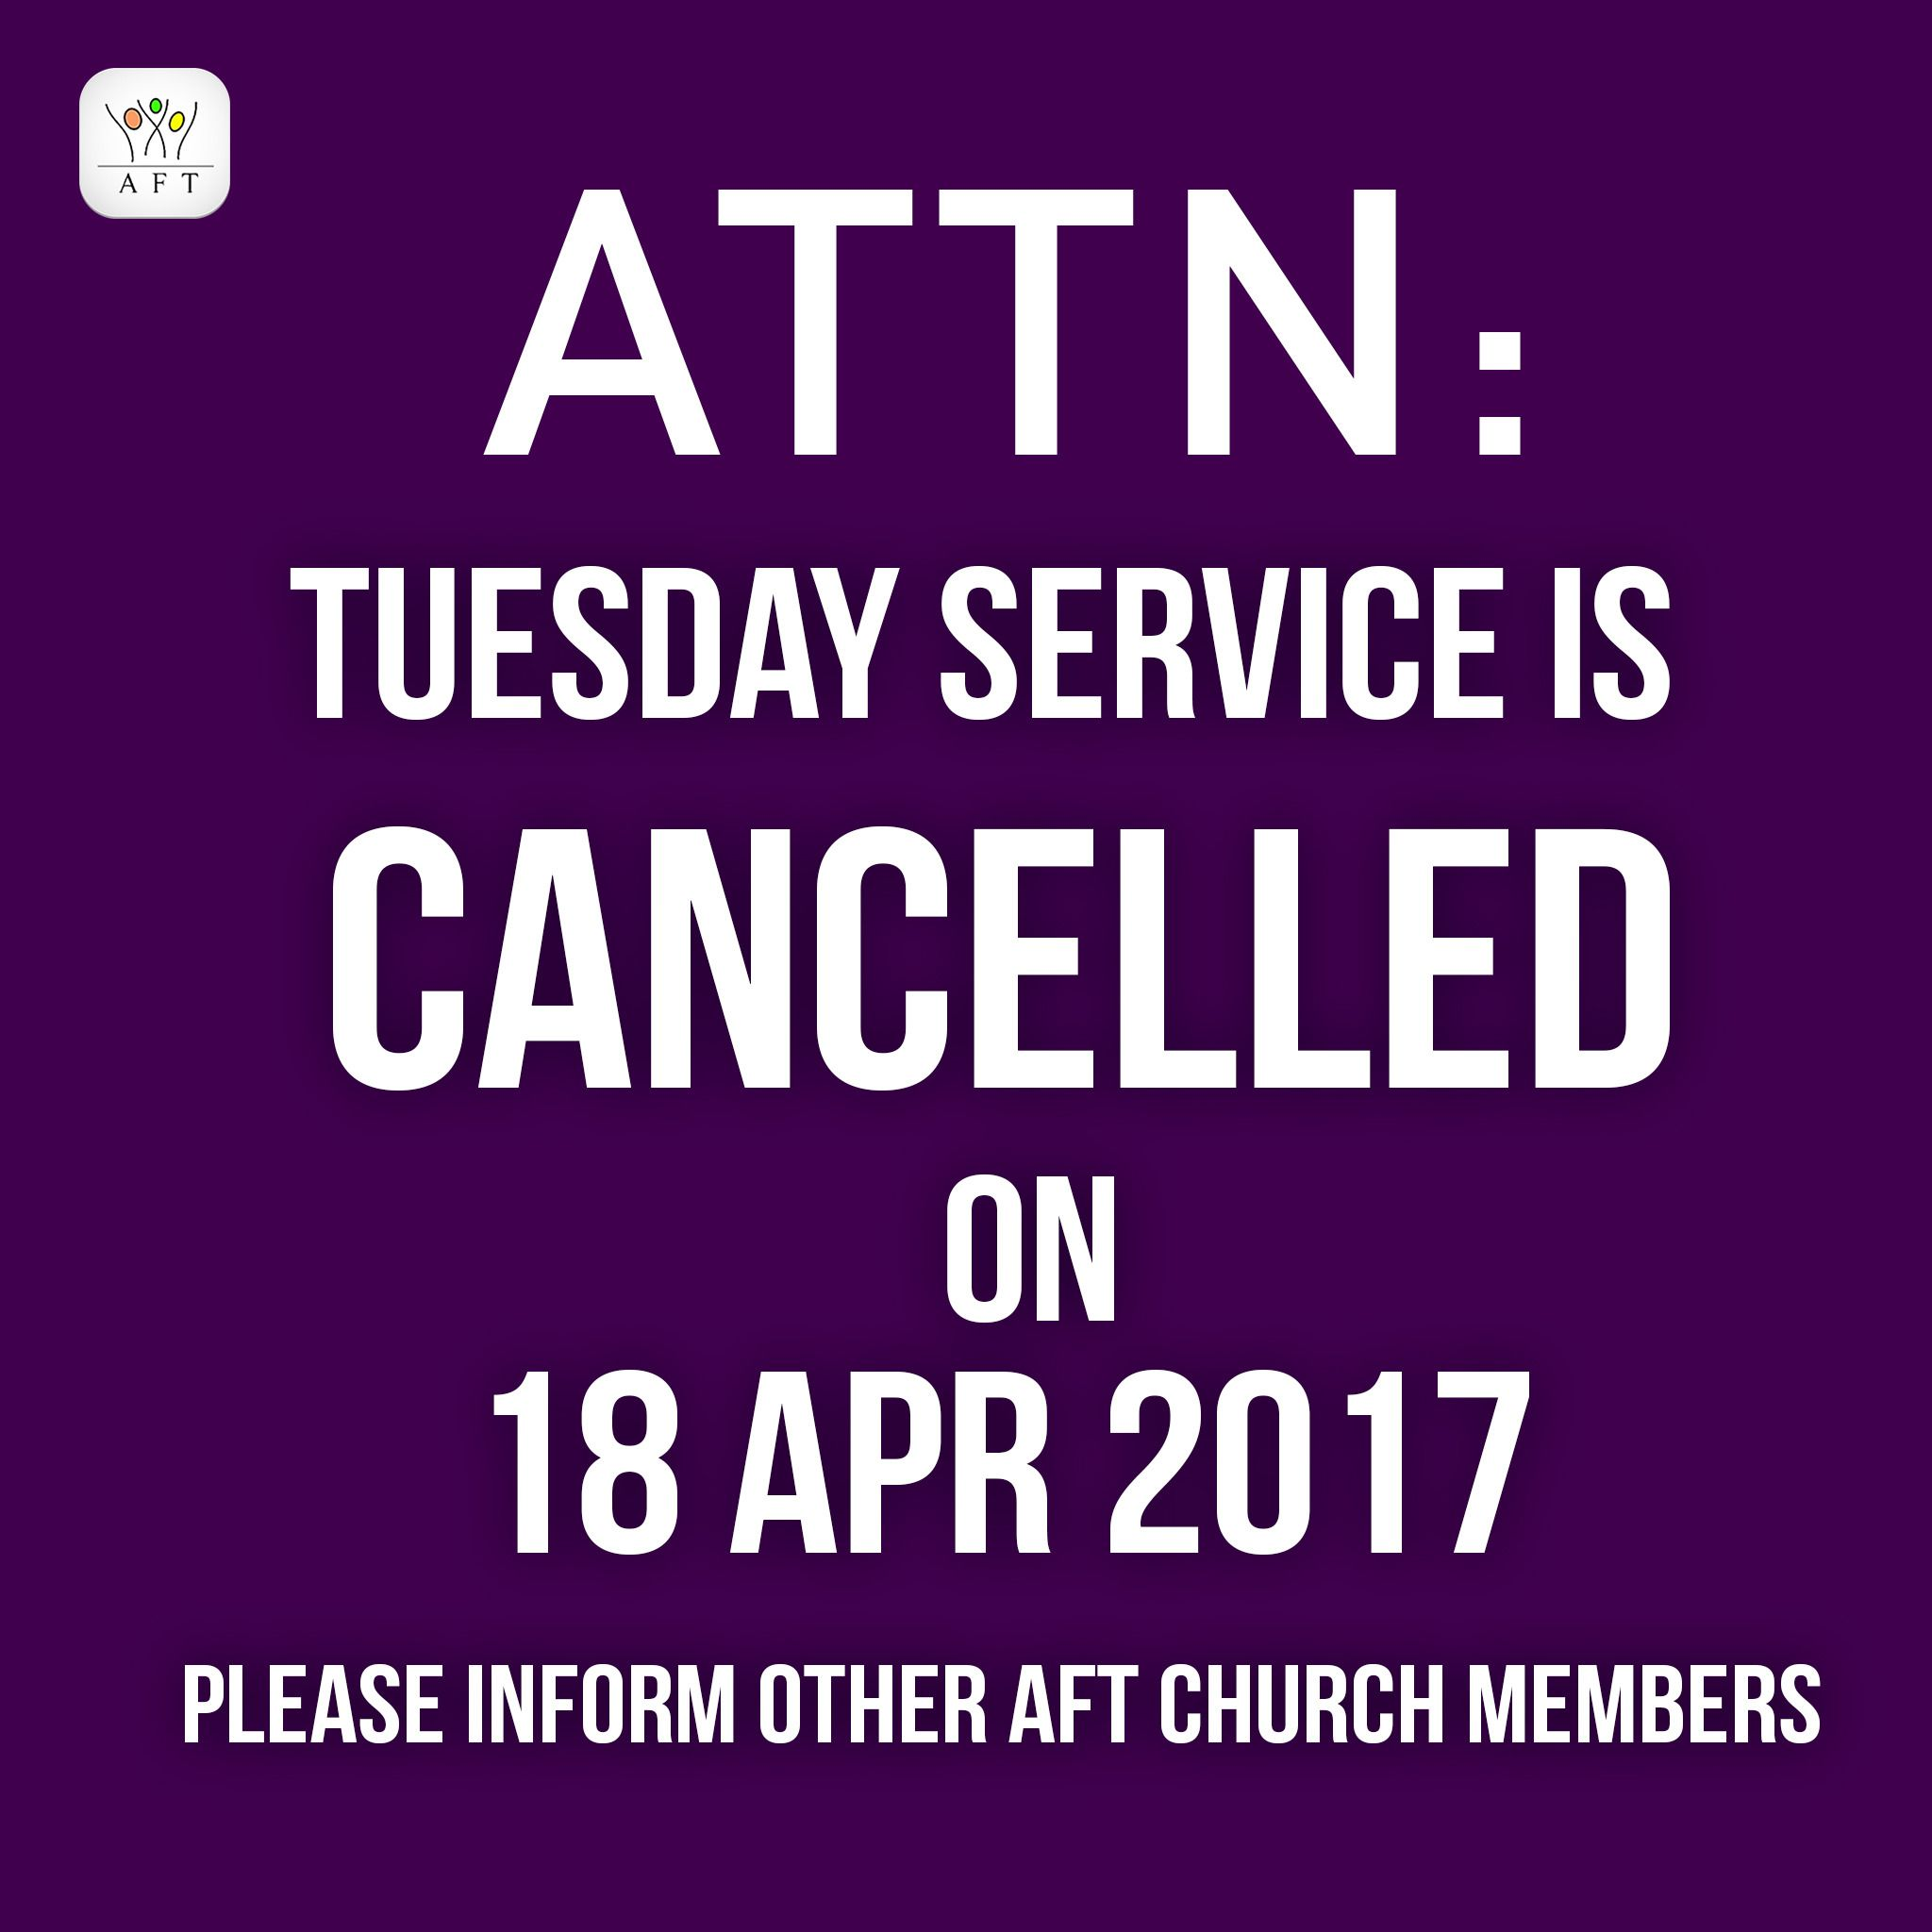 AttentionTuesday Evening Service Is Cancelled Today Full Gospel